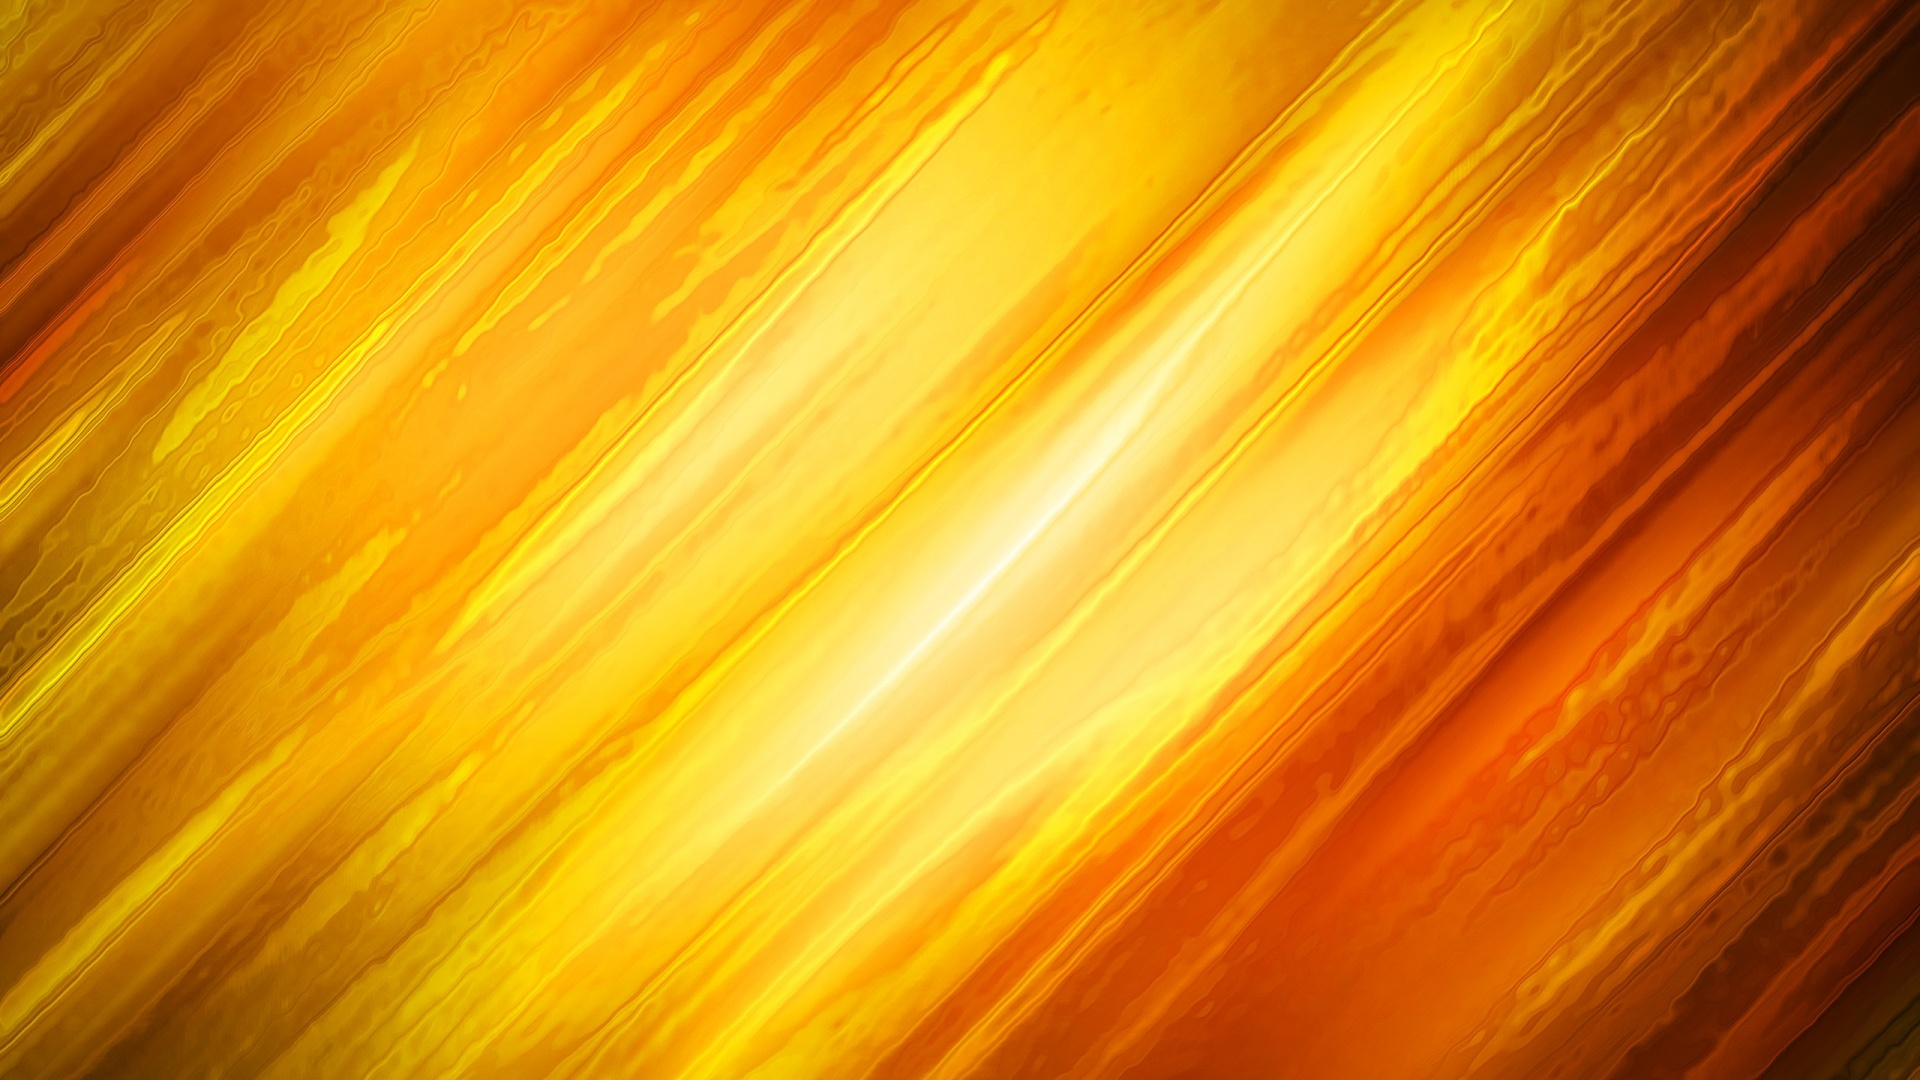 wallpapers background orange yellow abstract 1920x1080 1920x1080